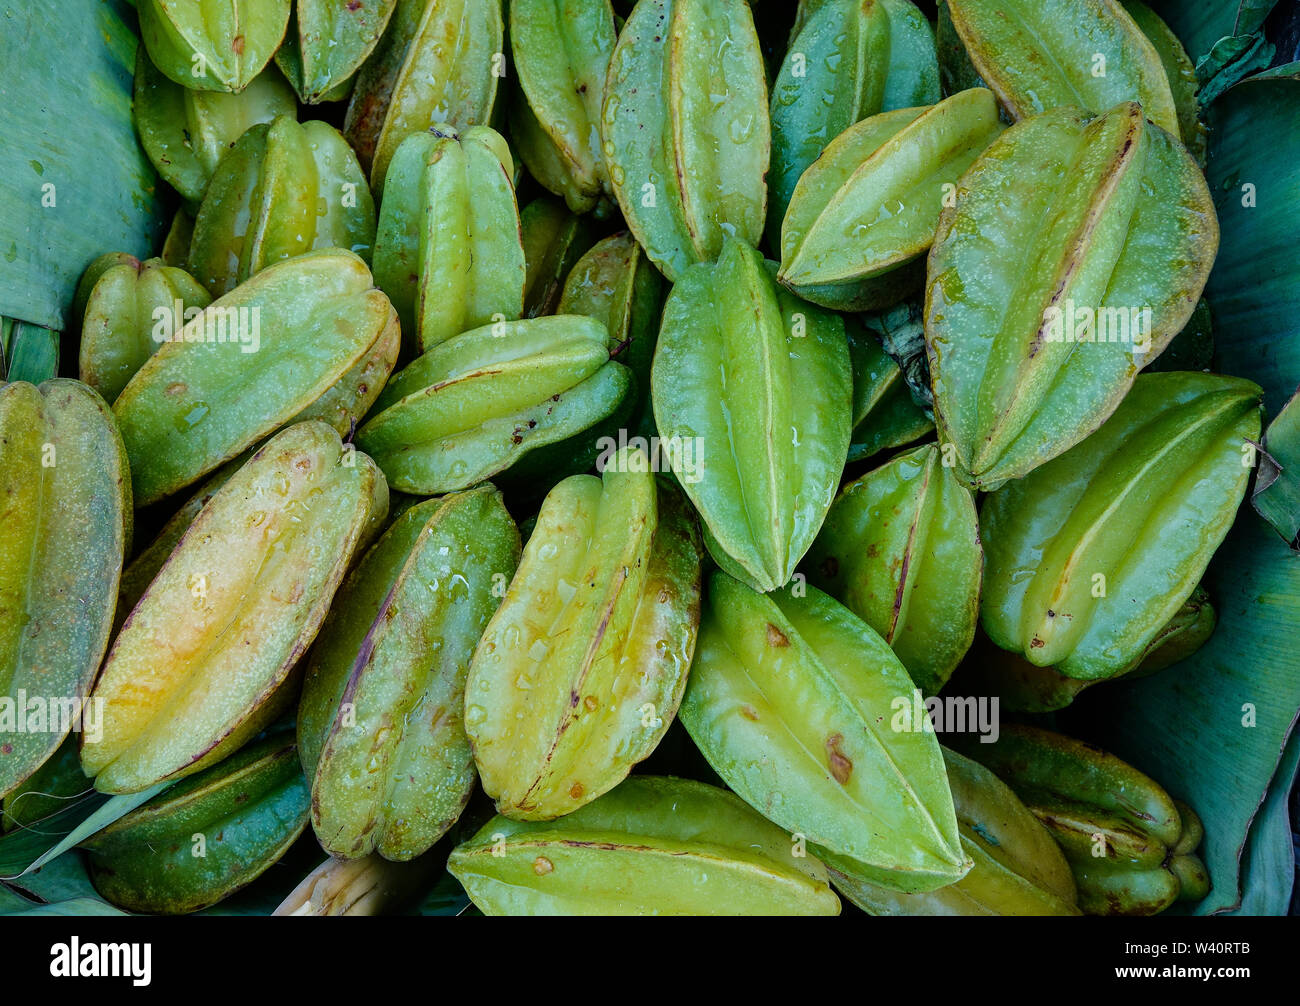 Yellow star apple fruits (Carambola) for sale at rural market. - Stock Image